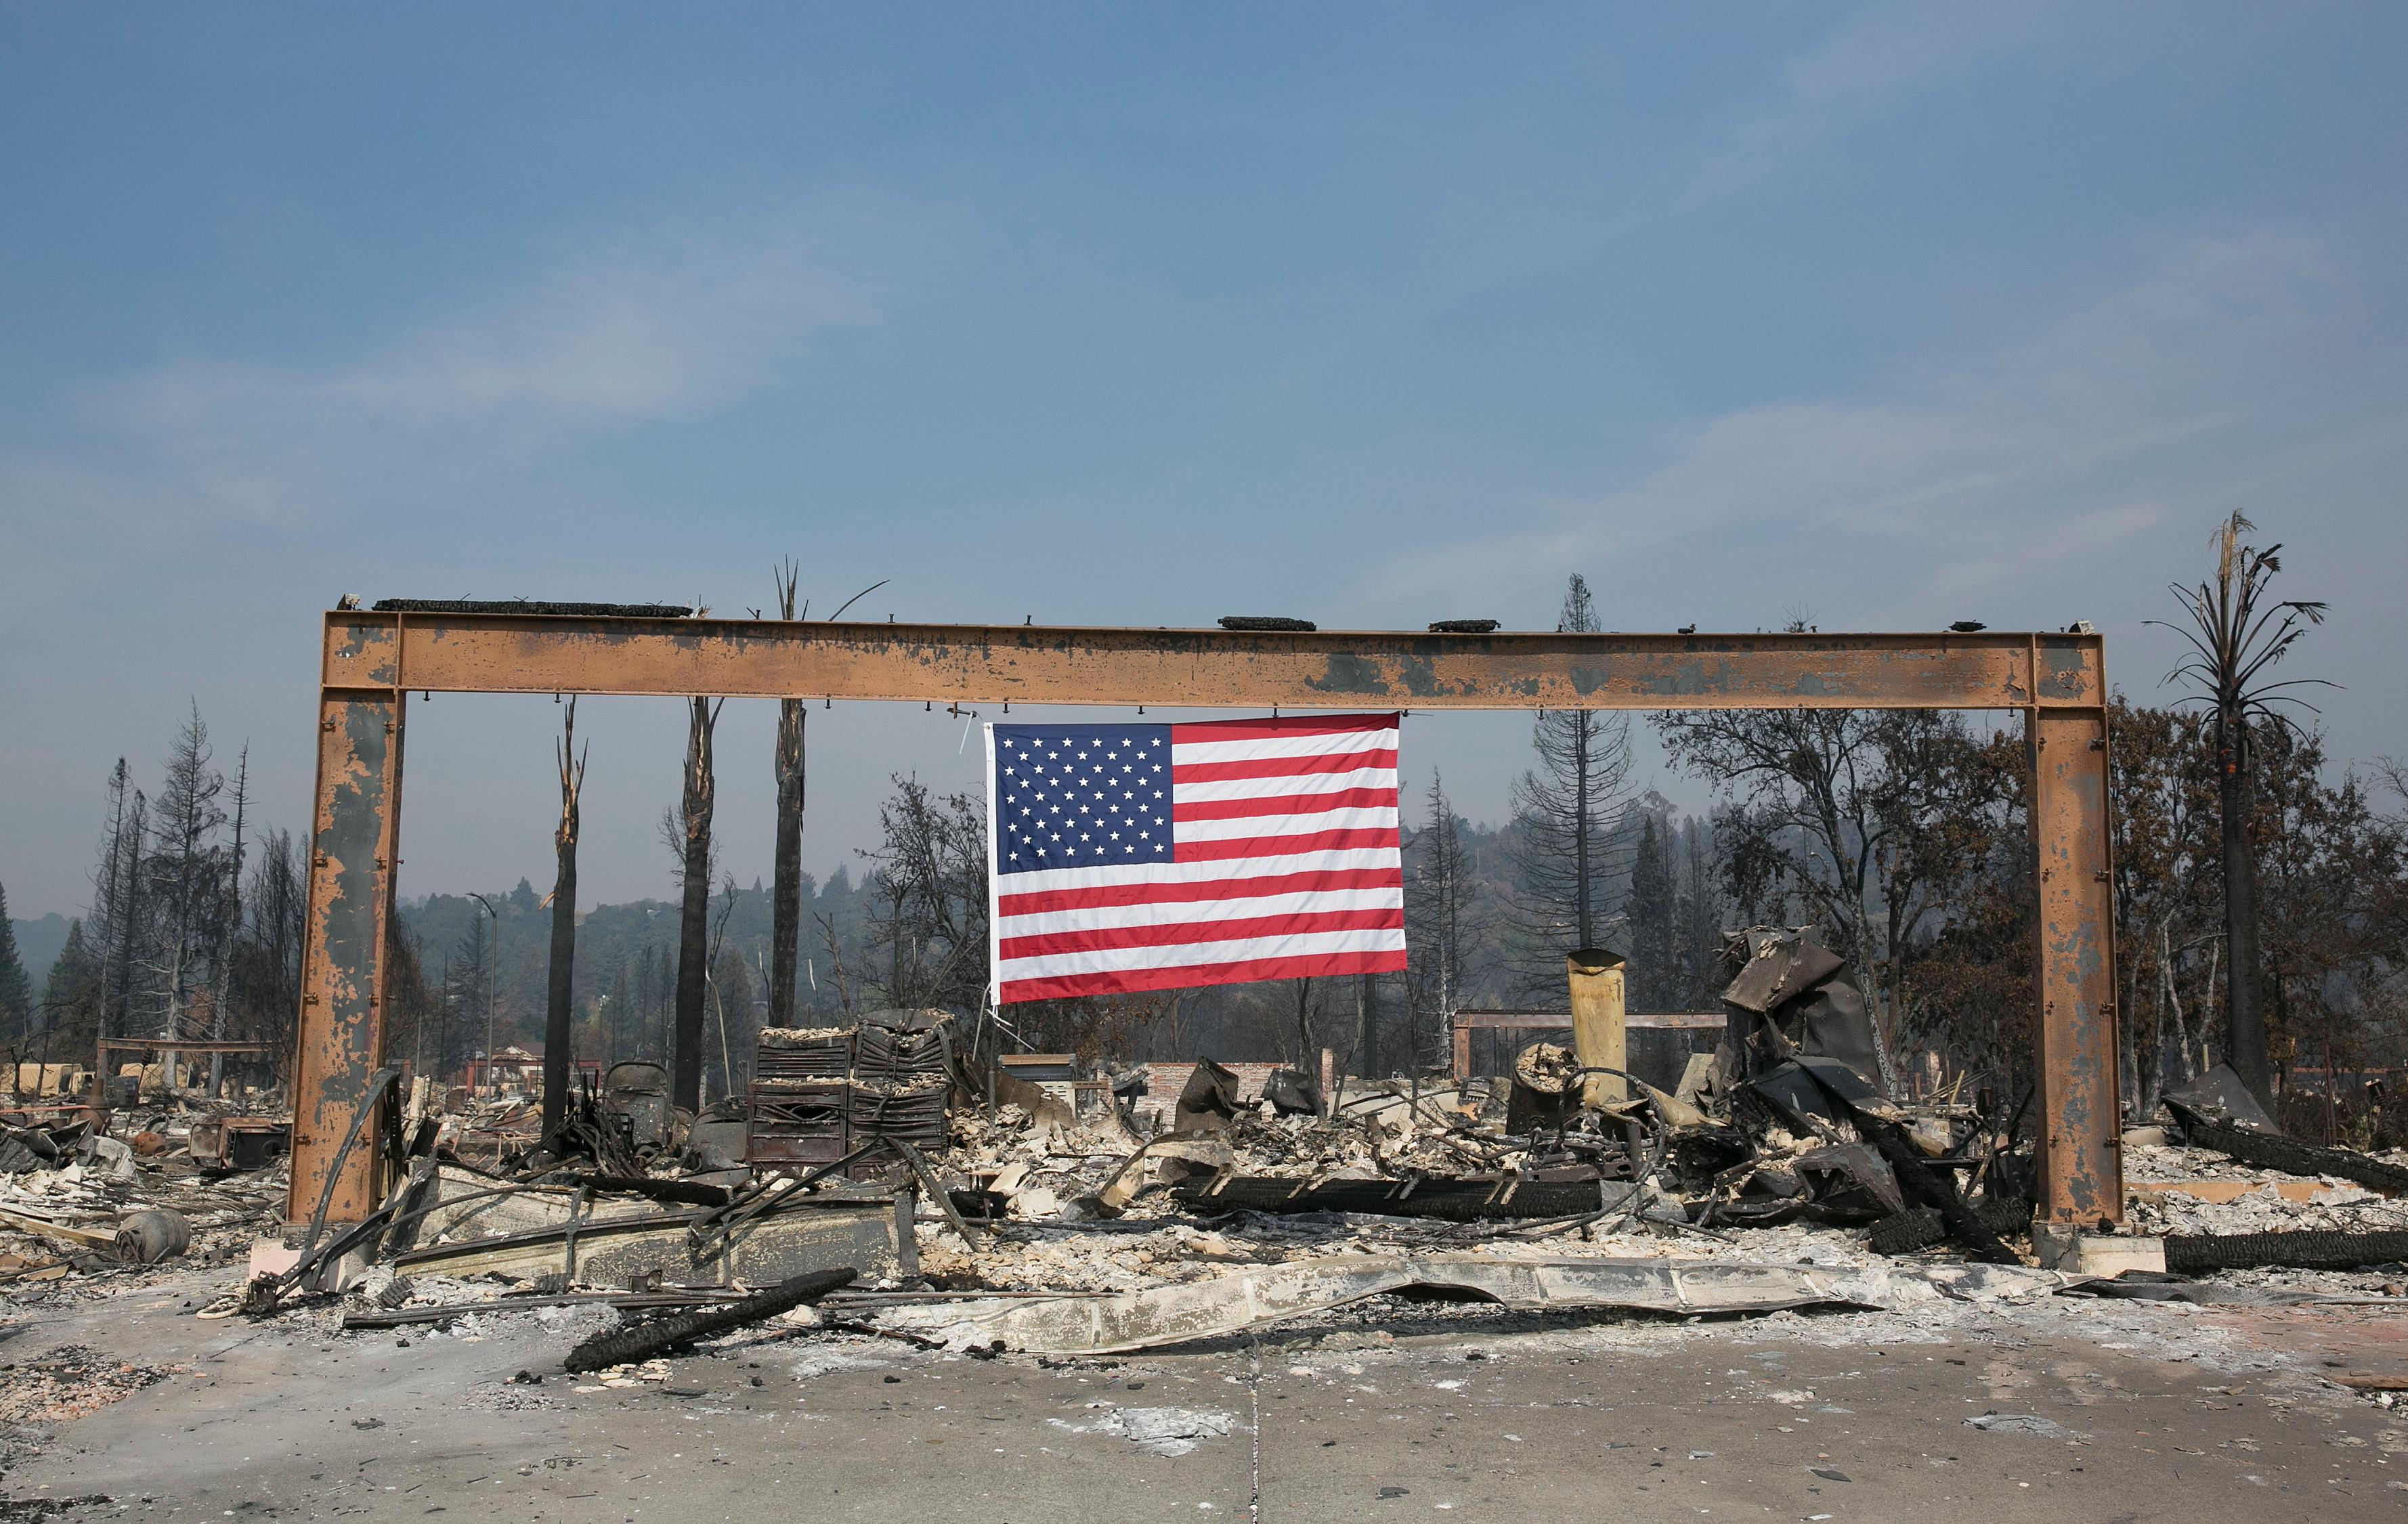 A United States flag hangs from the charred remains of a home in Santa Rosa, Calif. Monday, Oct. 16, 2017. Massive wildfires swept through area last week destroying thousands of homes and businesses and claiming the lives of dozens of people who were unable to escape the flames. (AP Photo/Rich Pedroncelli)